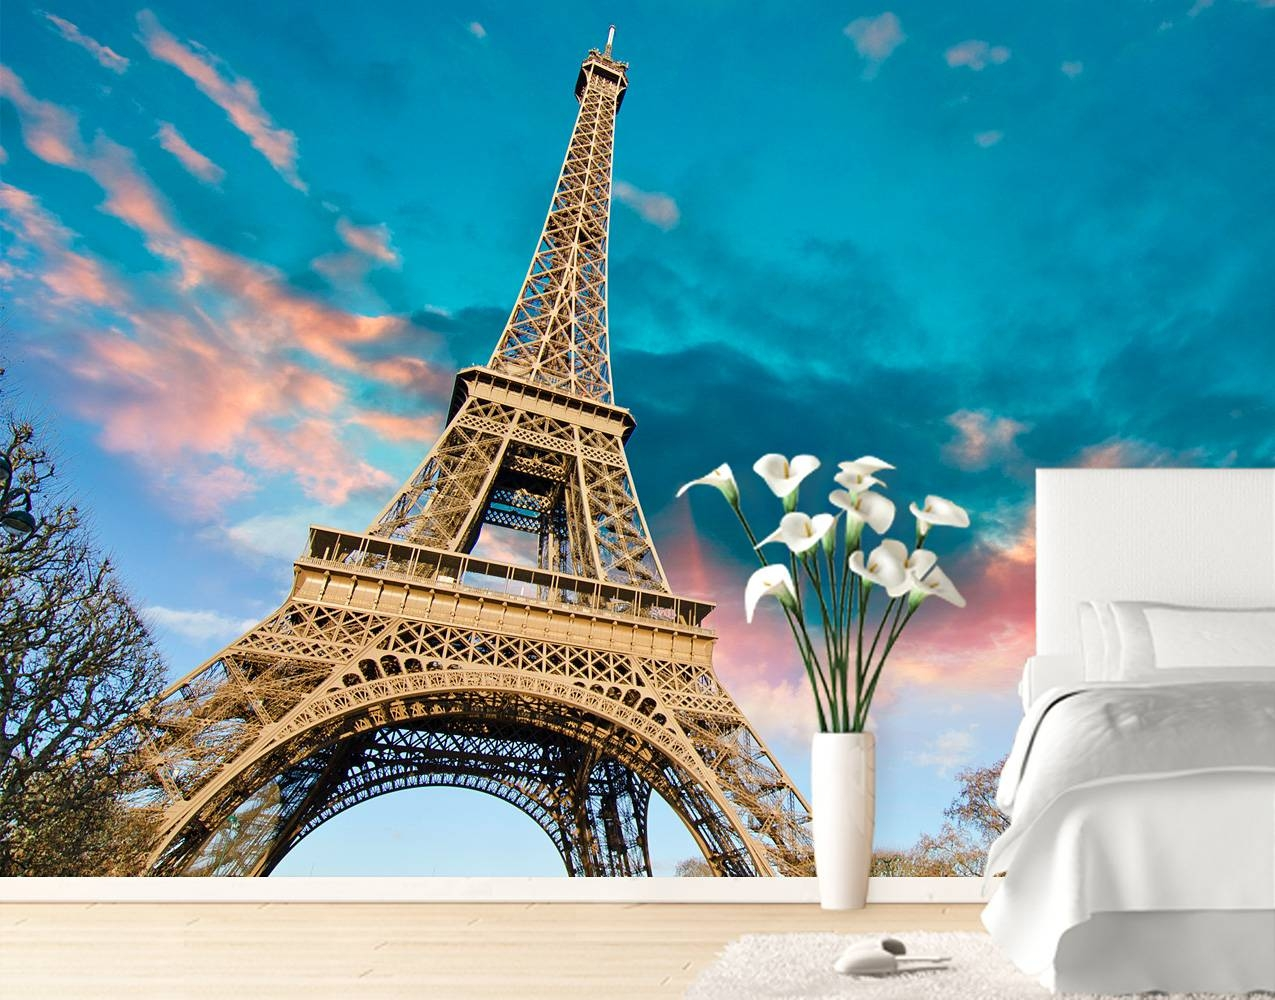 Eiffel Tower Wall Mural – Your Decal Shop | Nz Designer Wall Art For Latest Eiffel Tower Wall Art (View 2 of 20)